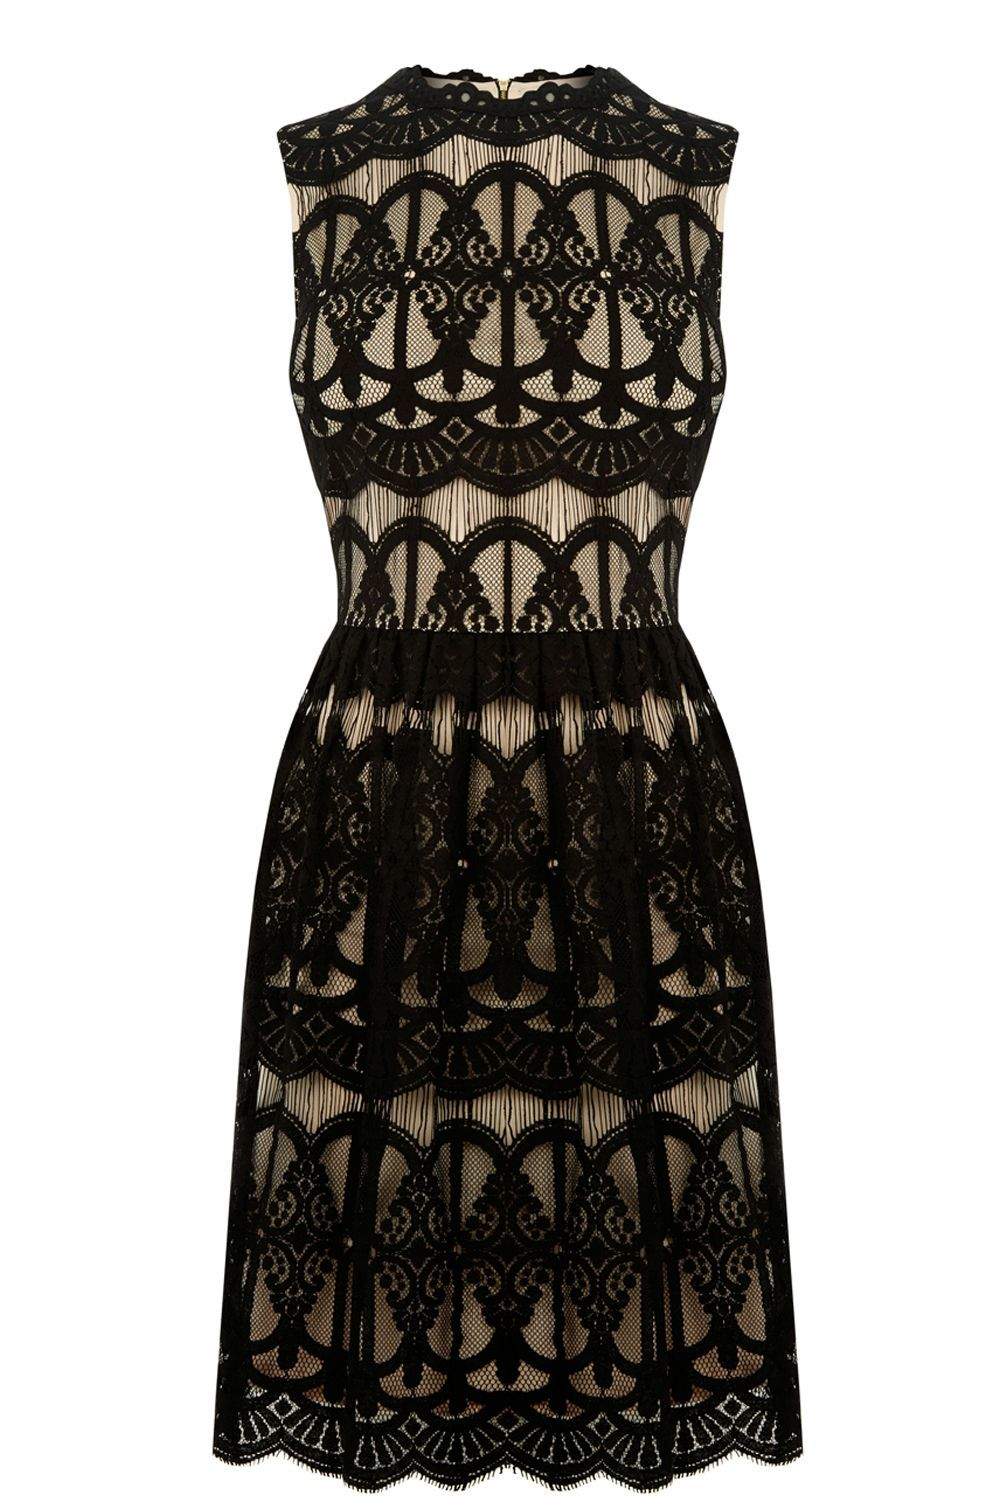 Deco Lace Dress, Black - pattern: plain; sleeve style: sleeveless; hip detail: draws attention to hips; predominant colour: black; occasions: evening; length: just above the knee; fit: fitted at waist & bust; style: fit & flare; fibres: cotton - mix; neckline: crew; sleeve length: sleeveless; texture group: lace; pattern type: fabric; embellishment: lace; season: a/w 2016; wardrobe: event